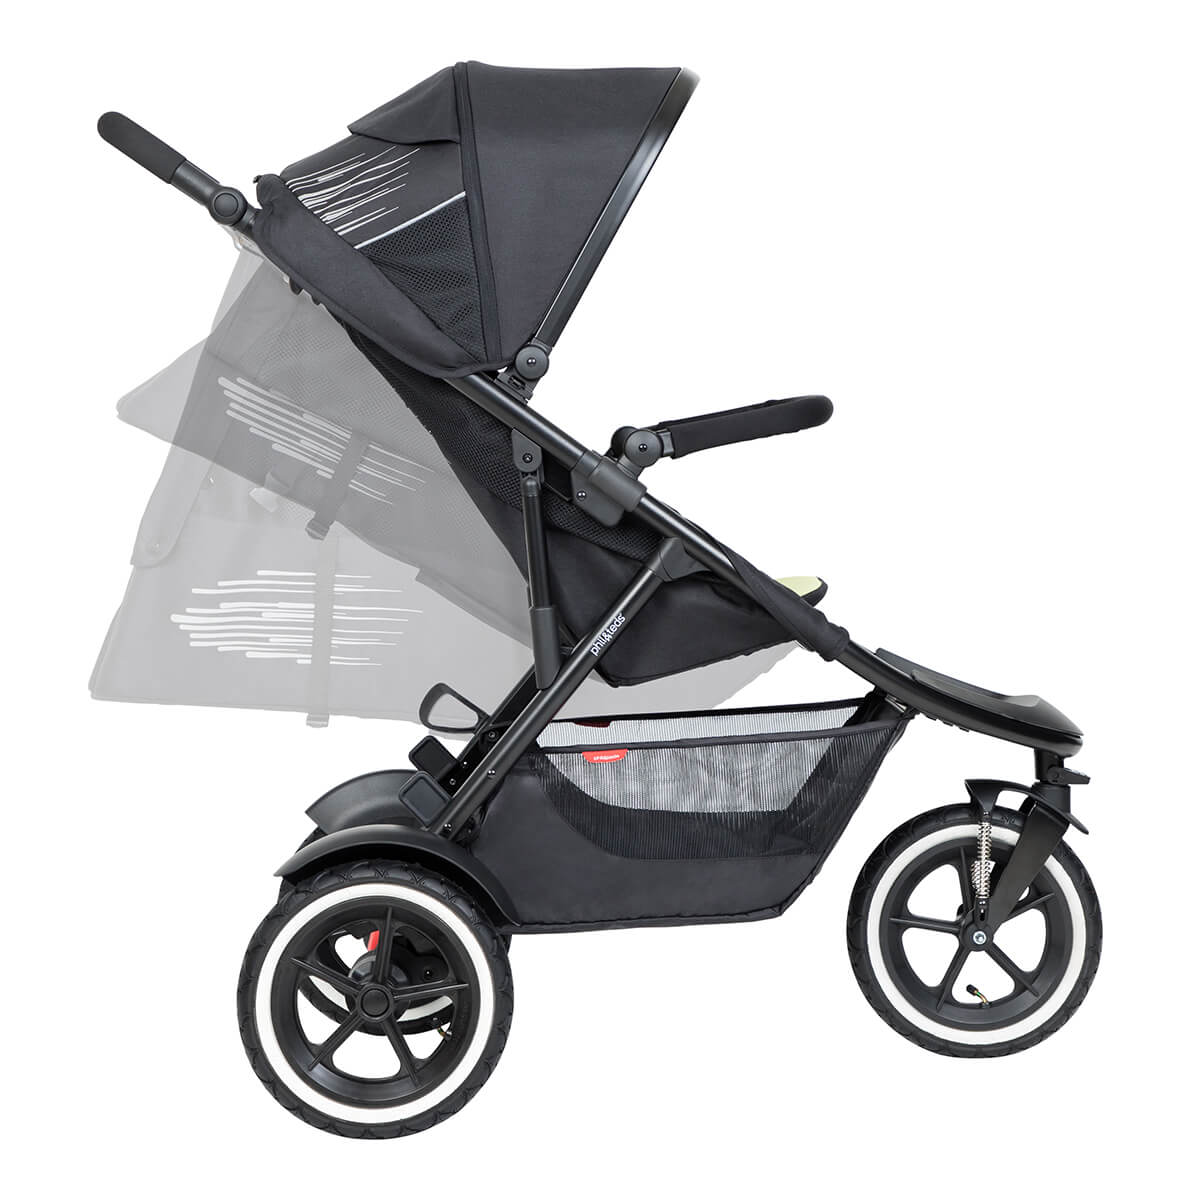 https://cdn.accentuate.io/4513463468128/19440099492024/philteds-sport-buggy-can-recline-in-multiple-angles-including-full-recline-for-newborn-baby-v1626486660893.jpg?1200x1200